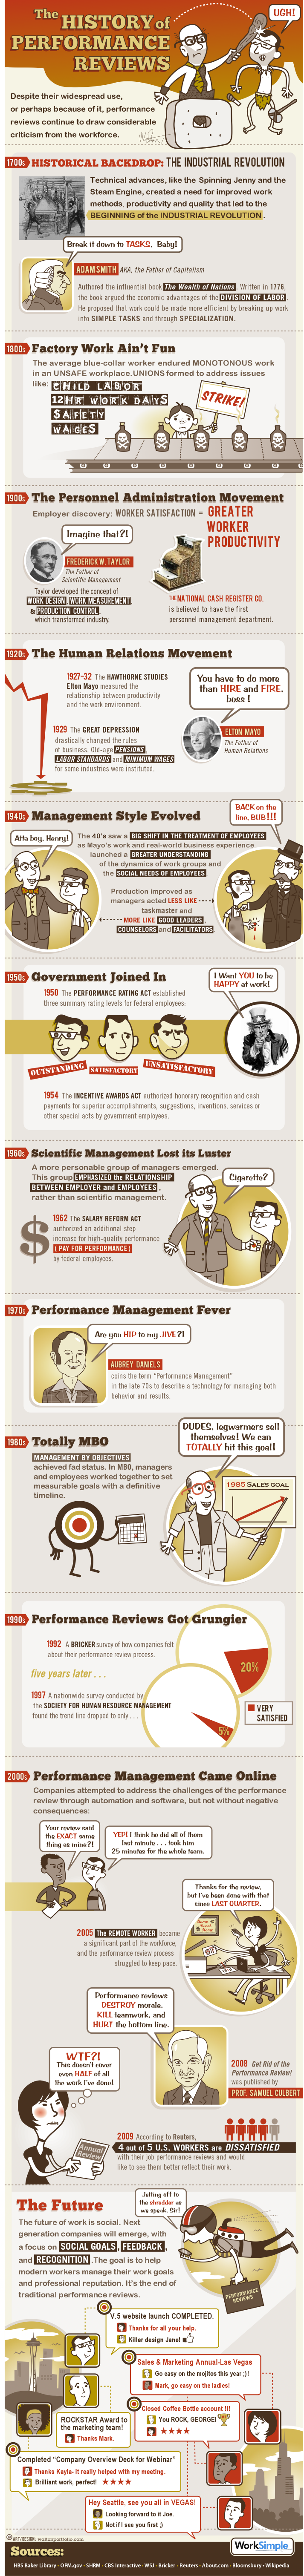 The History of Performance Reviews #infographic